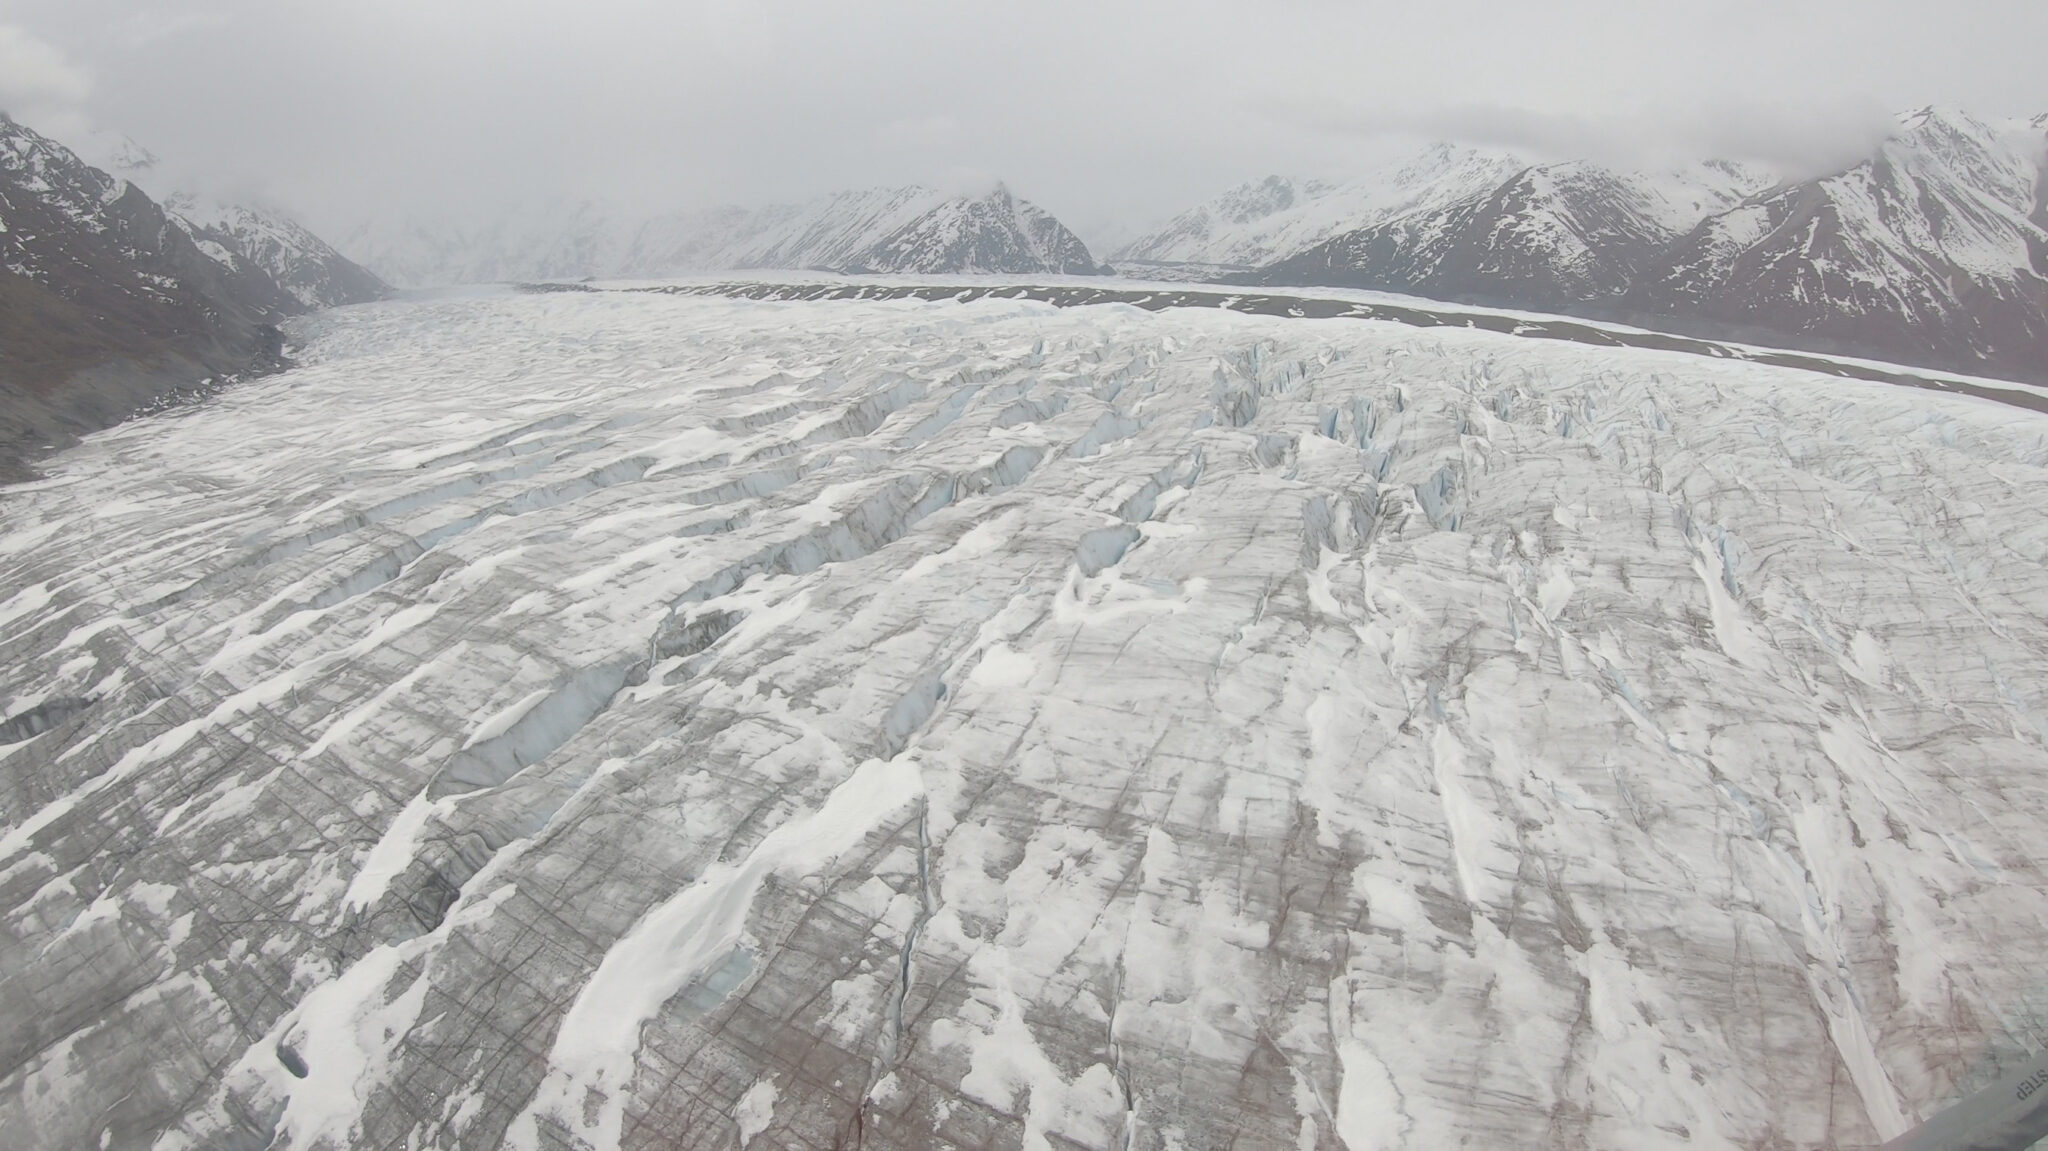 Matanuska Glacier by Helicopter